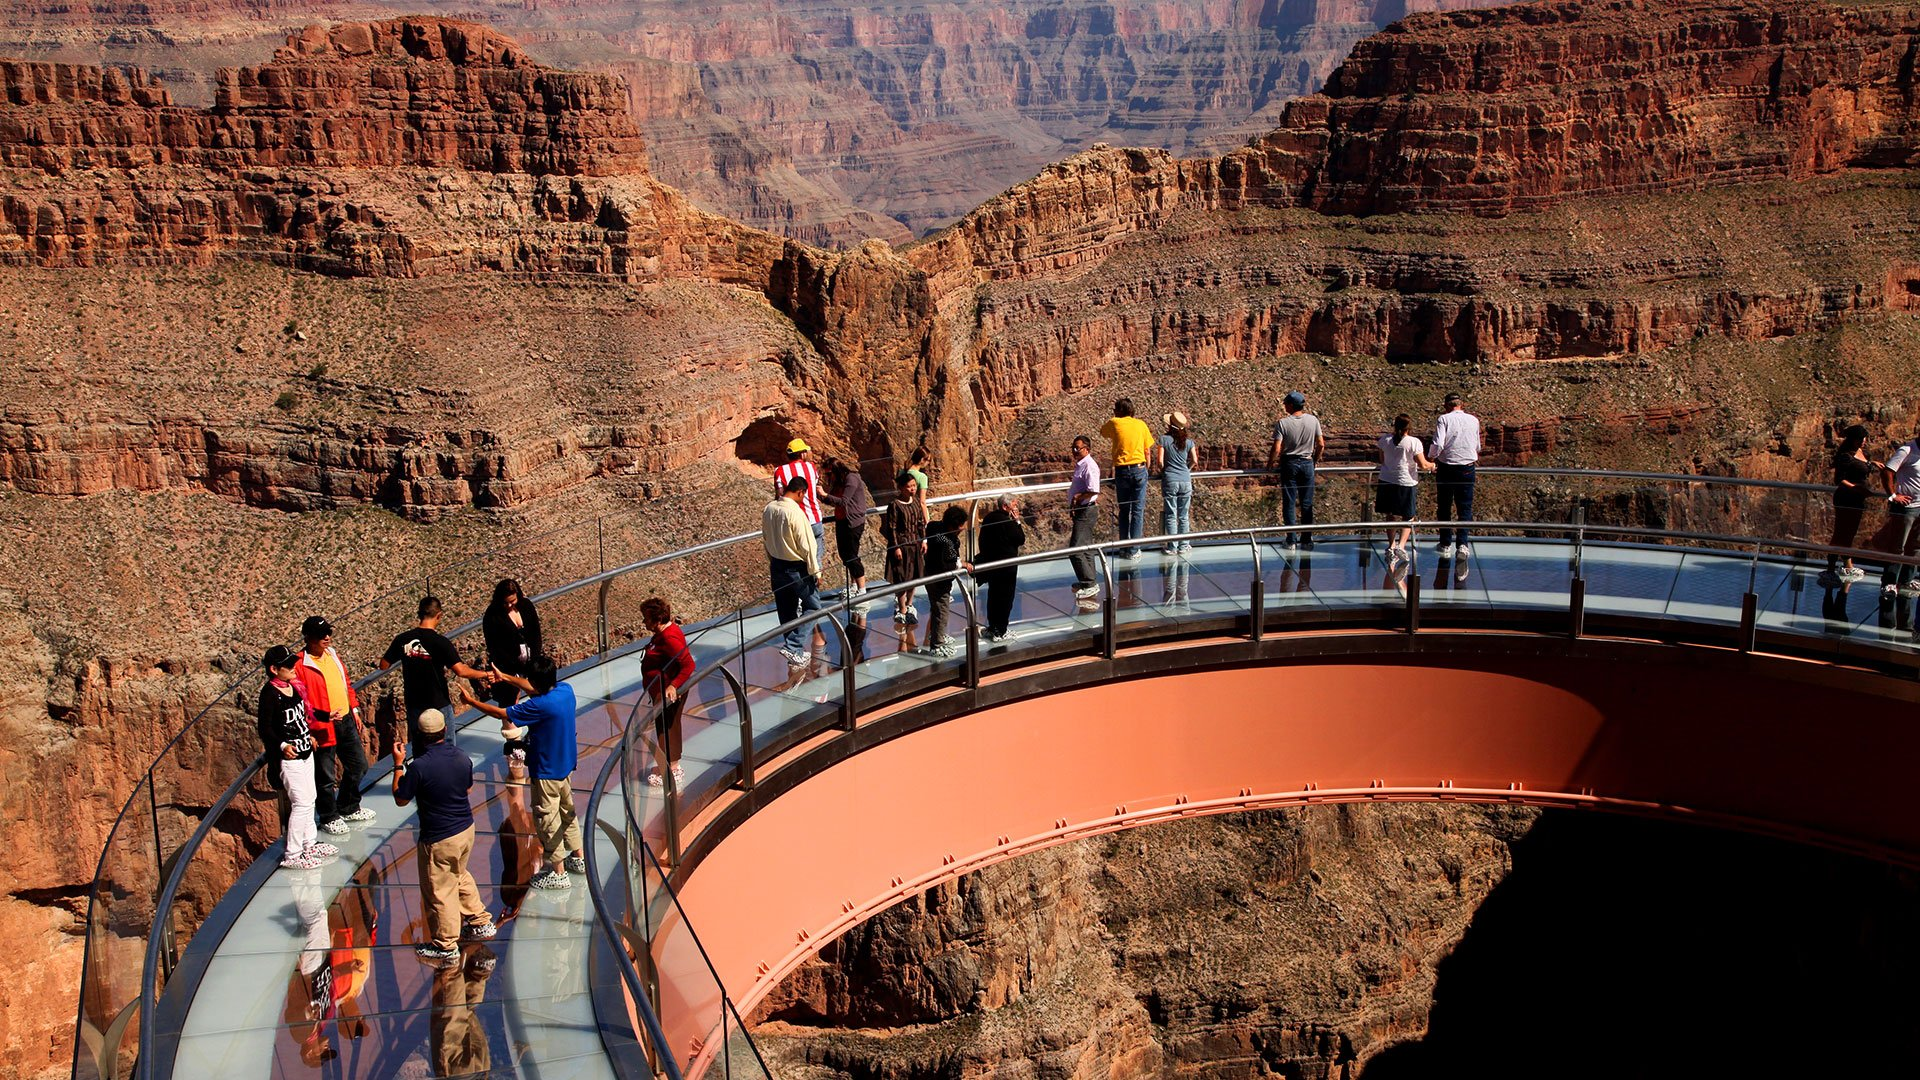 Guests on the Skywalk glass bridge enjoying the view of the Grand Canyon